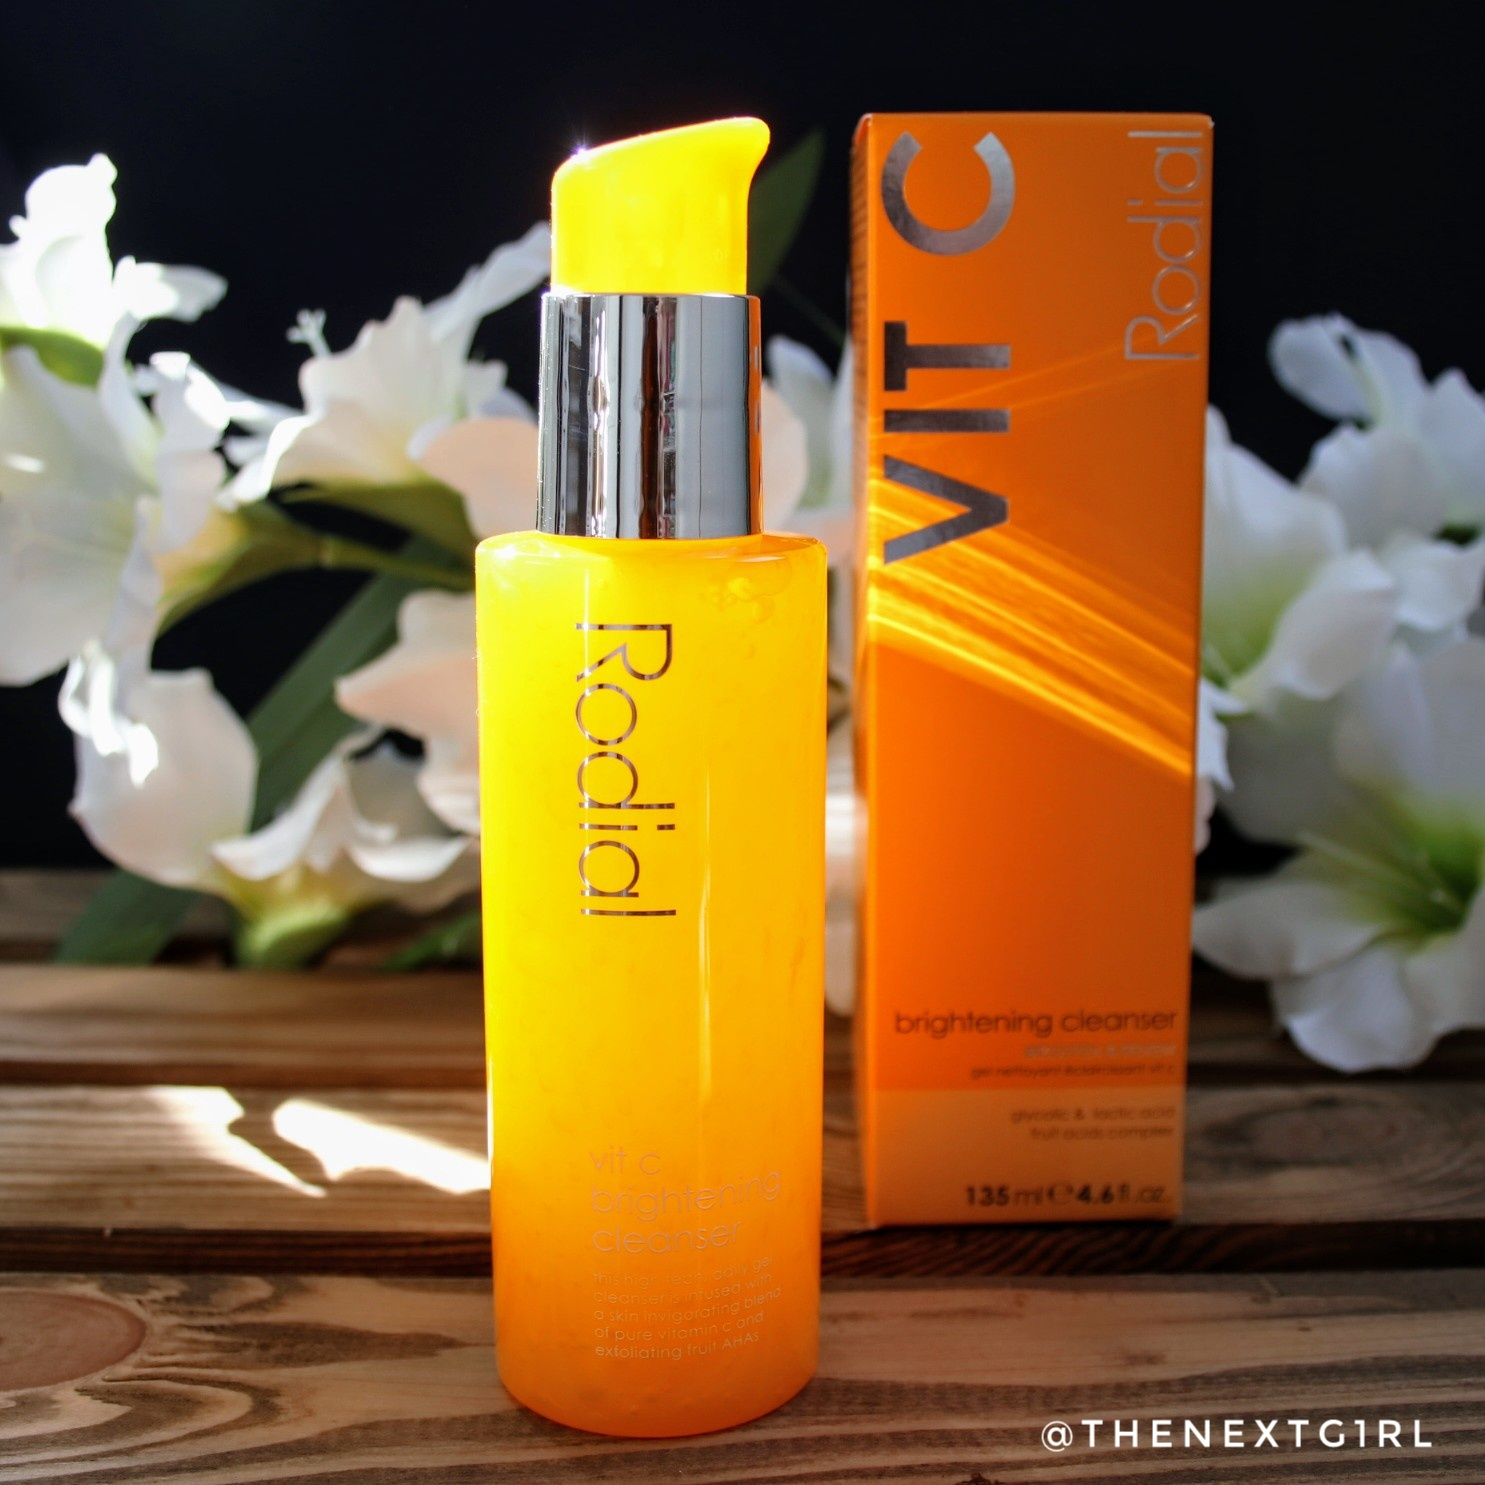 Review: Rodial Vit C brightening cleanser